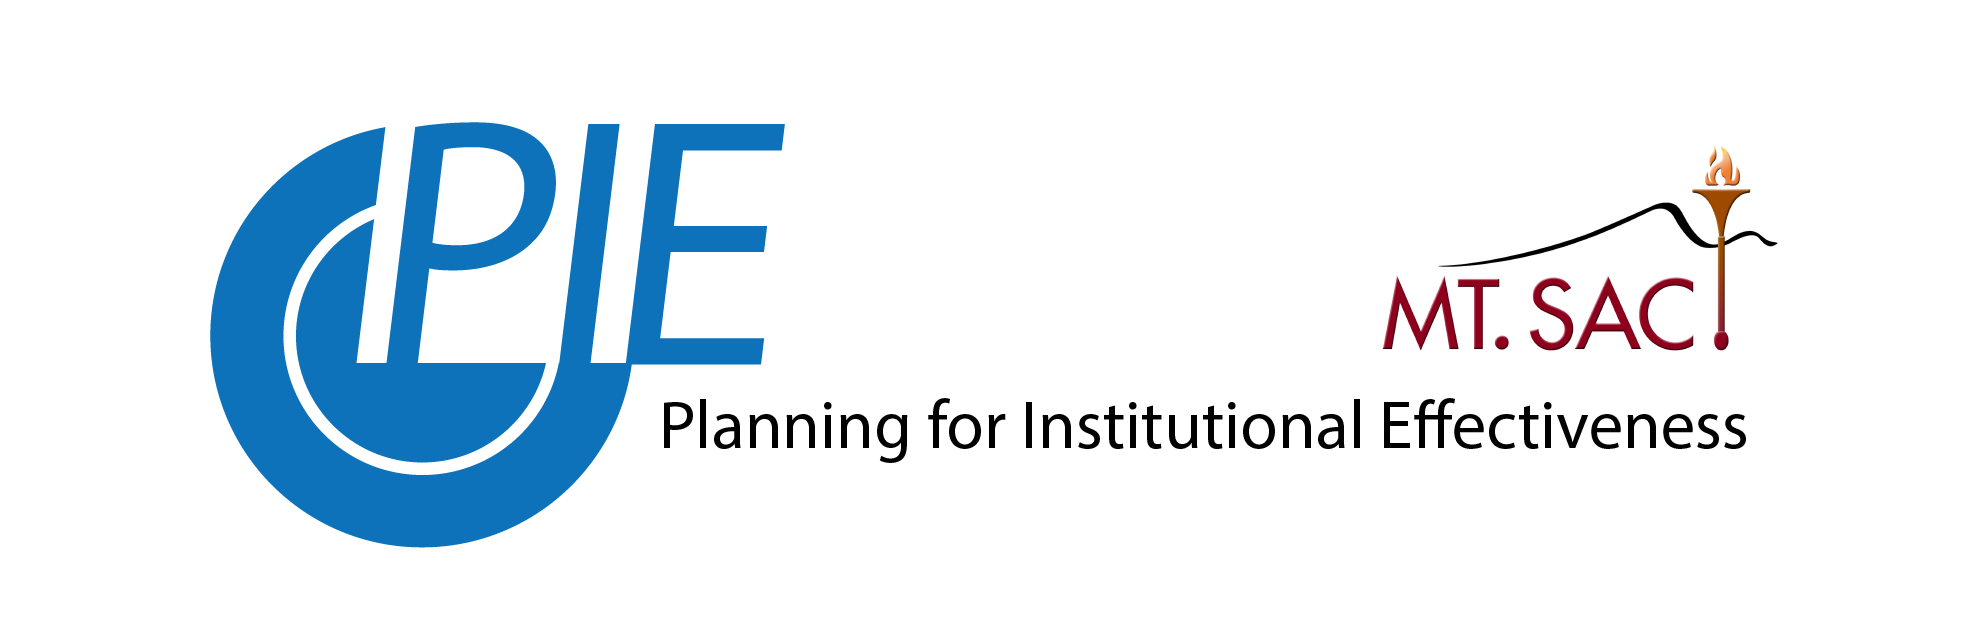 the planning for institutional effectiveness logo, a blue circle with two circles sections separated by a space and the top-right quarter cut out with the letters P I E in all caps